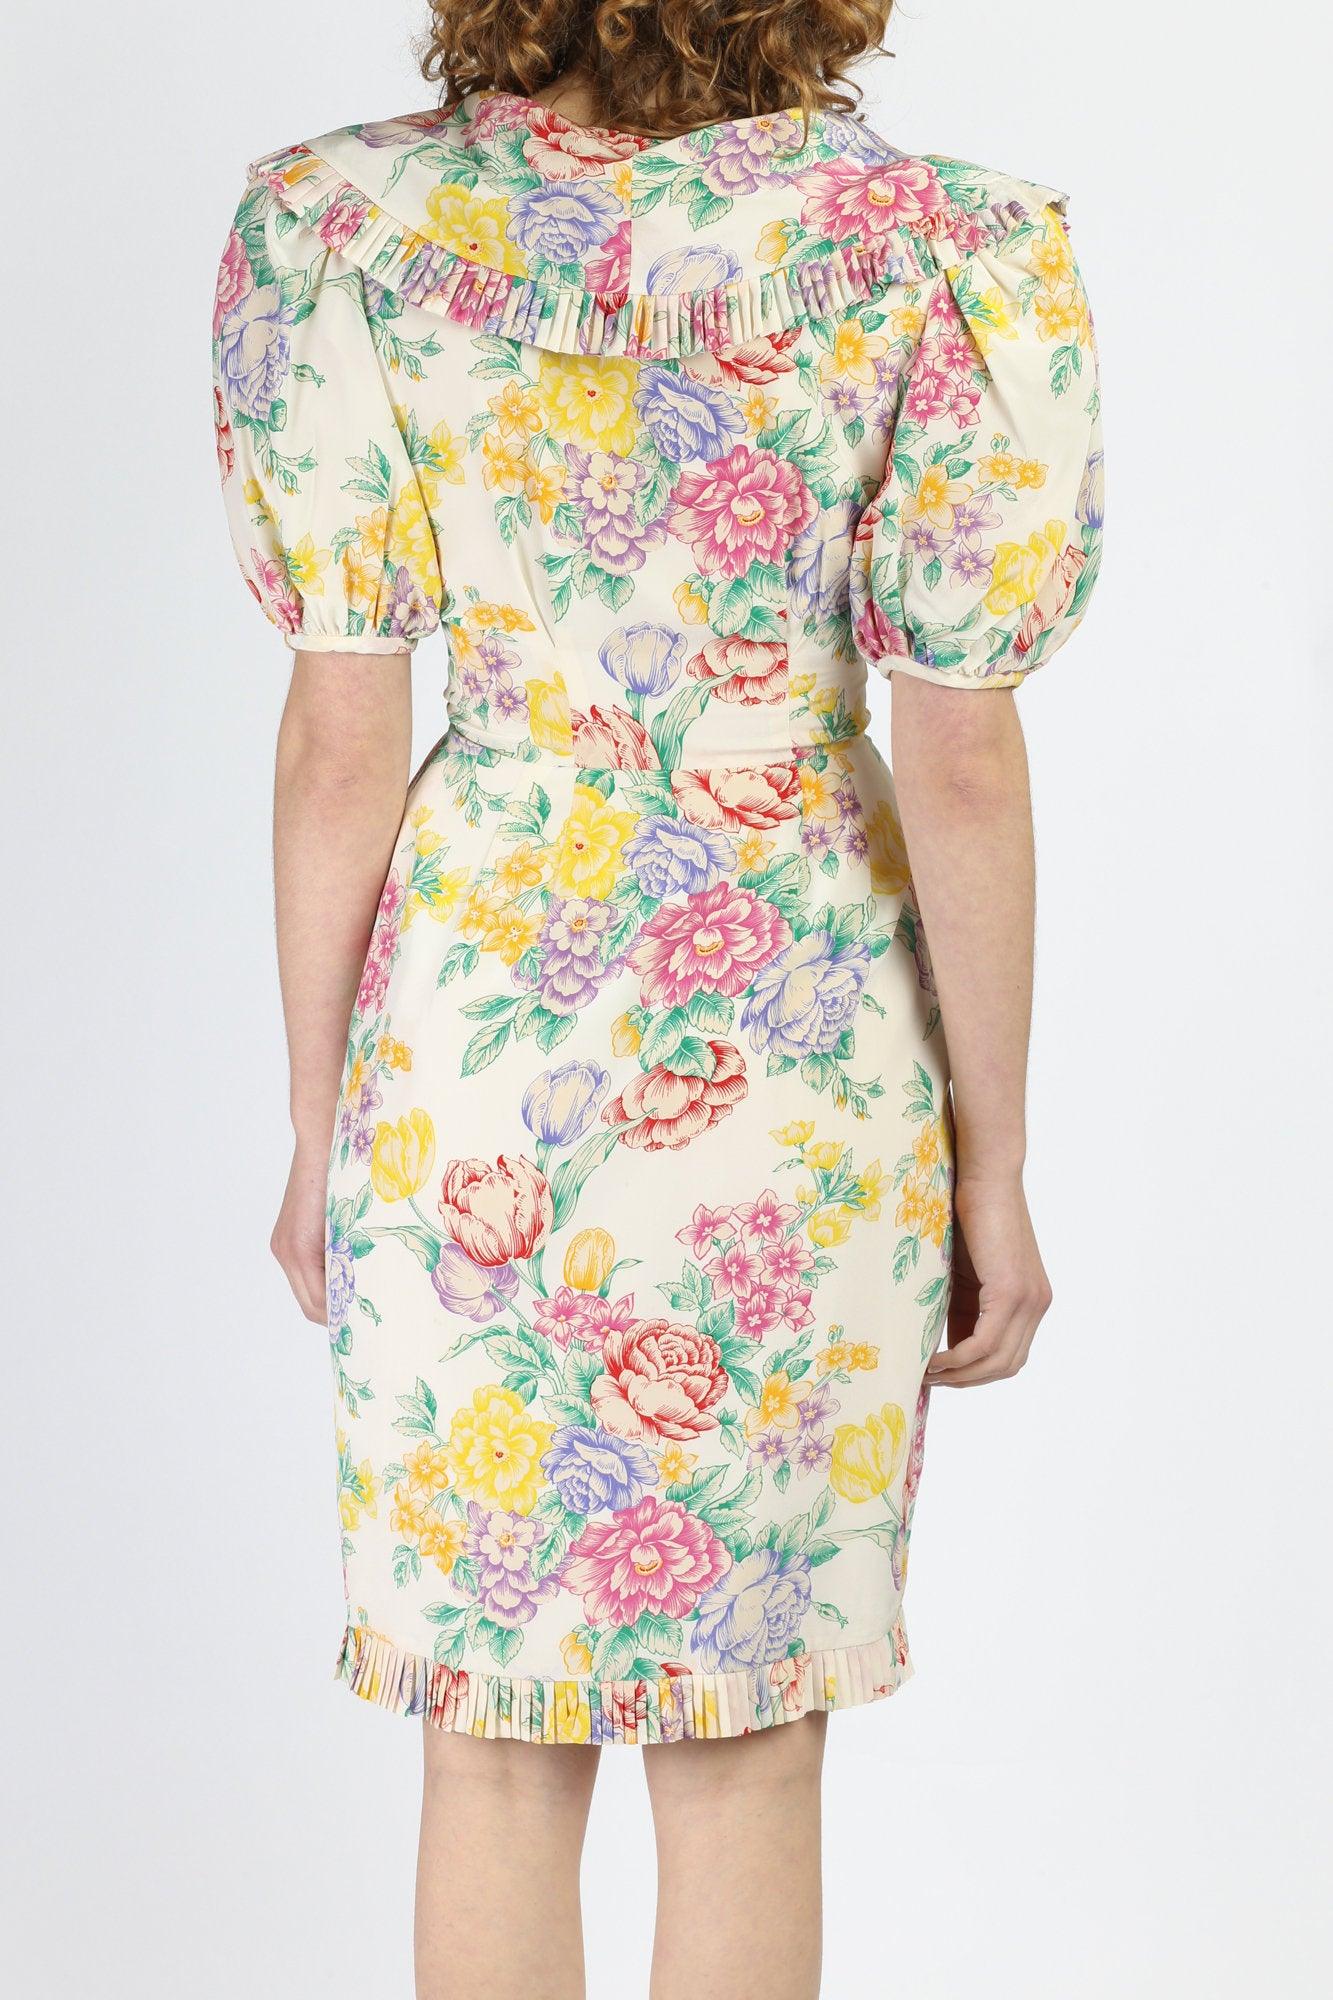 80s Albert Nipon Floral Silk Dress - Extra Small to Small